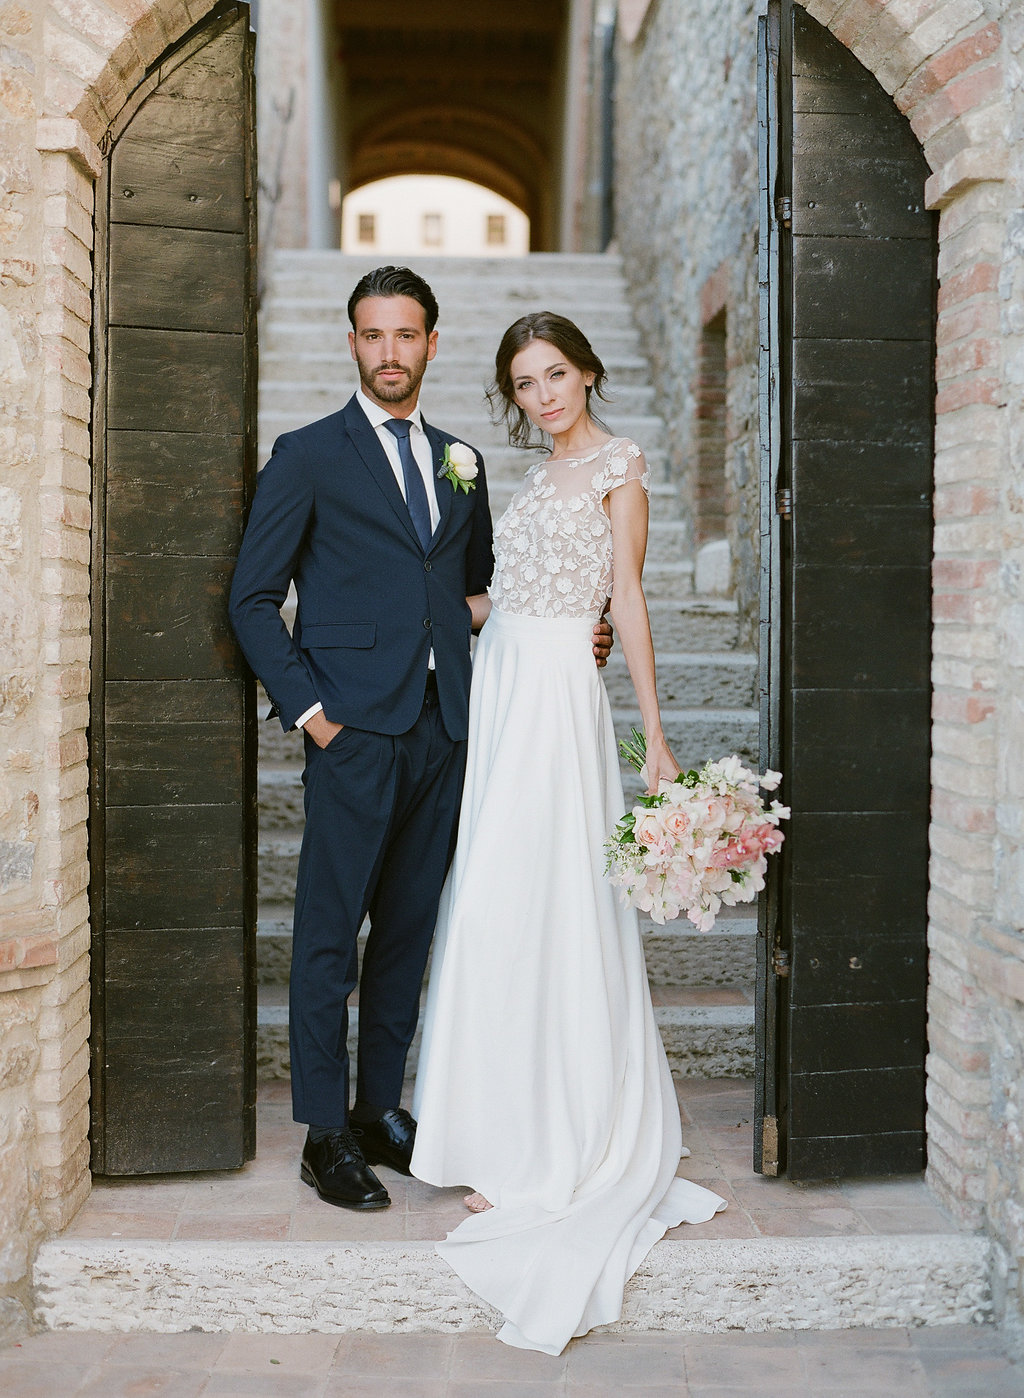 bride and groom posing in a Tuscan winery hallway